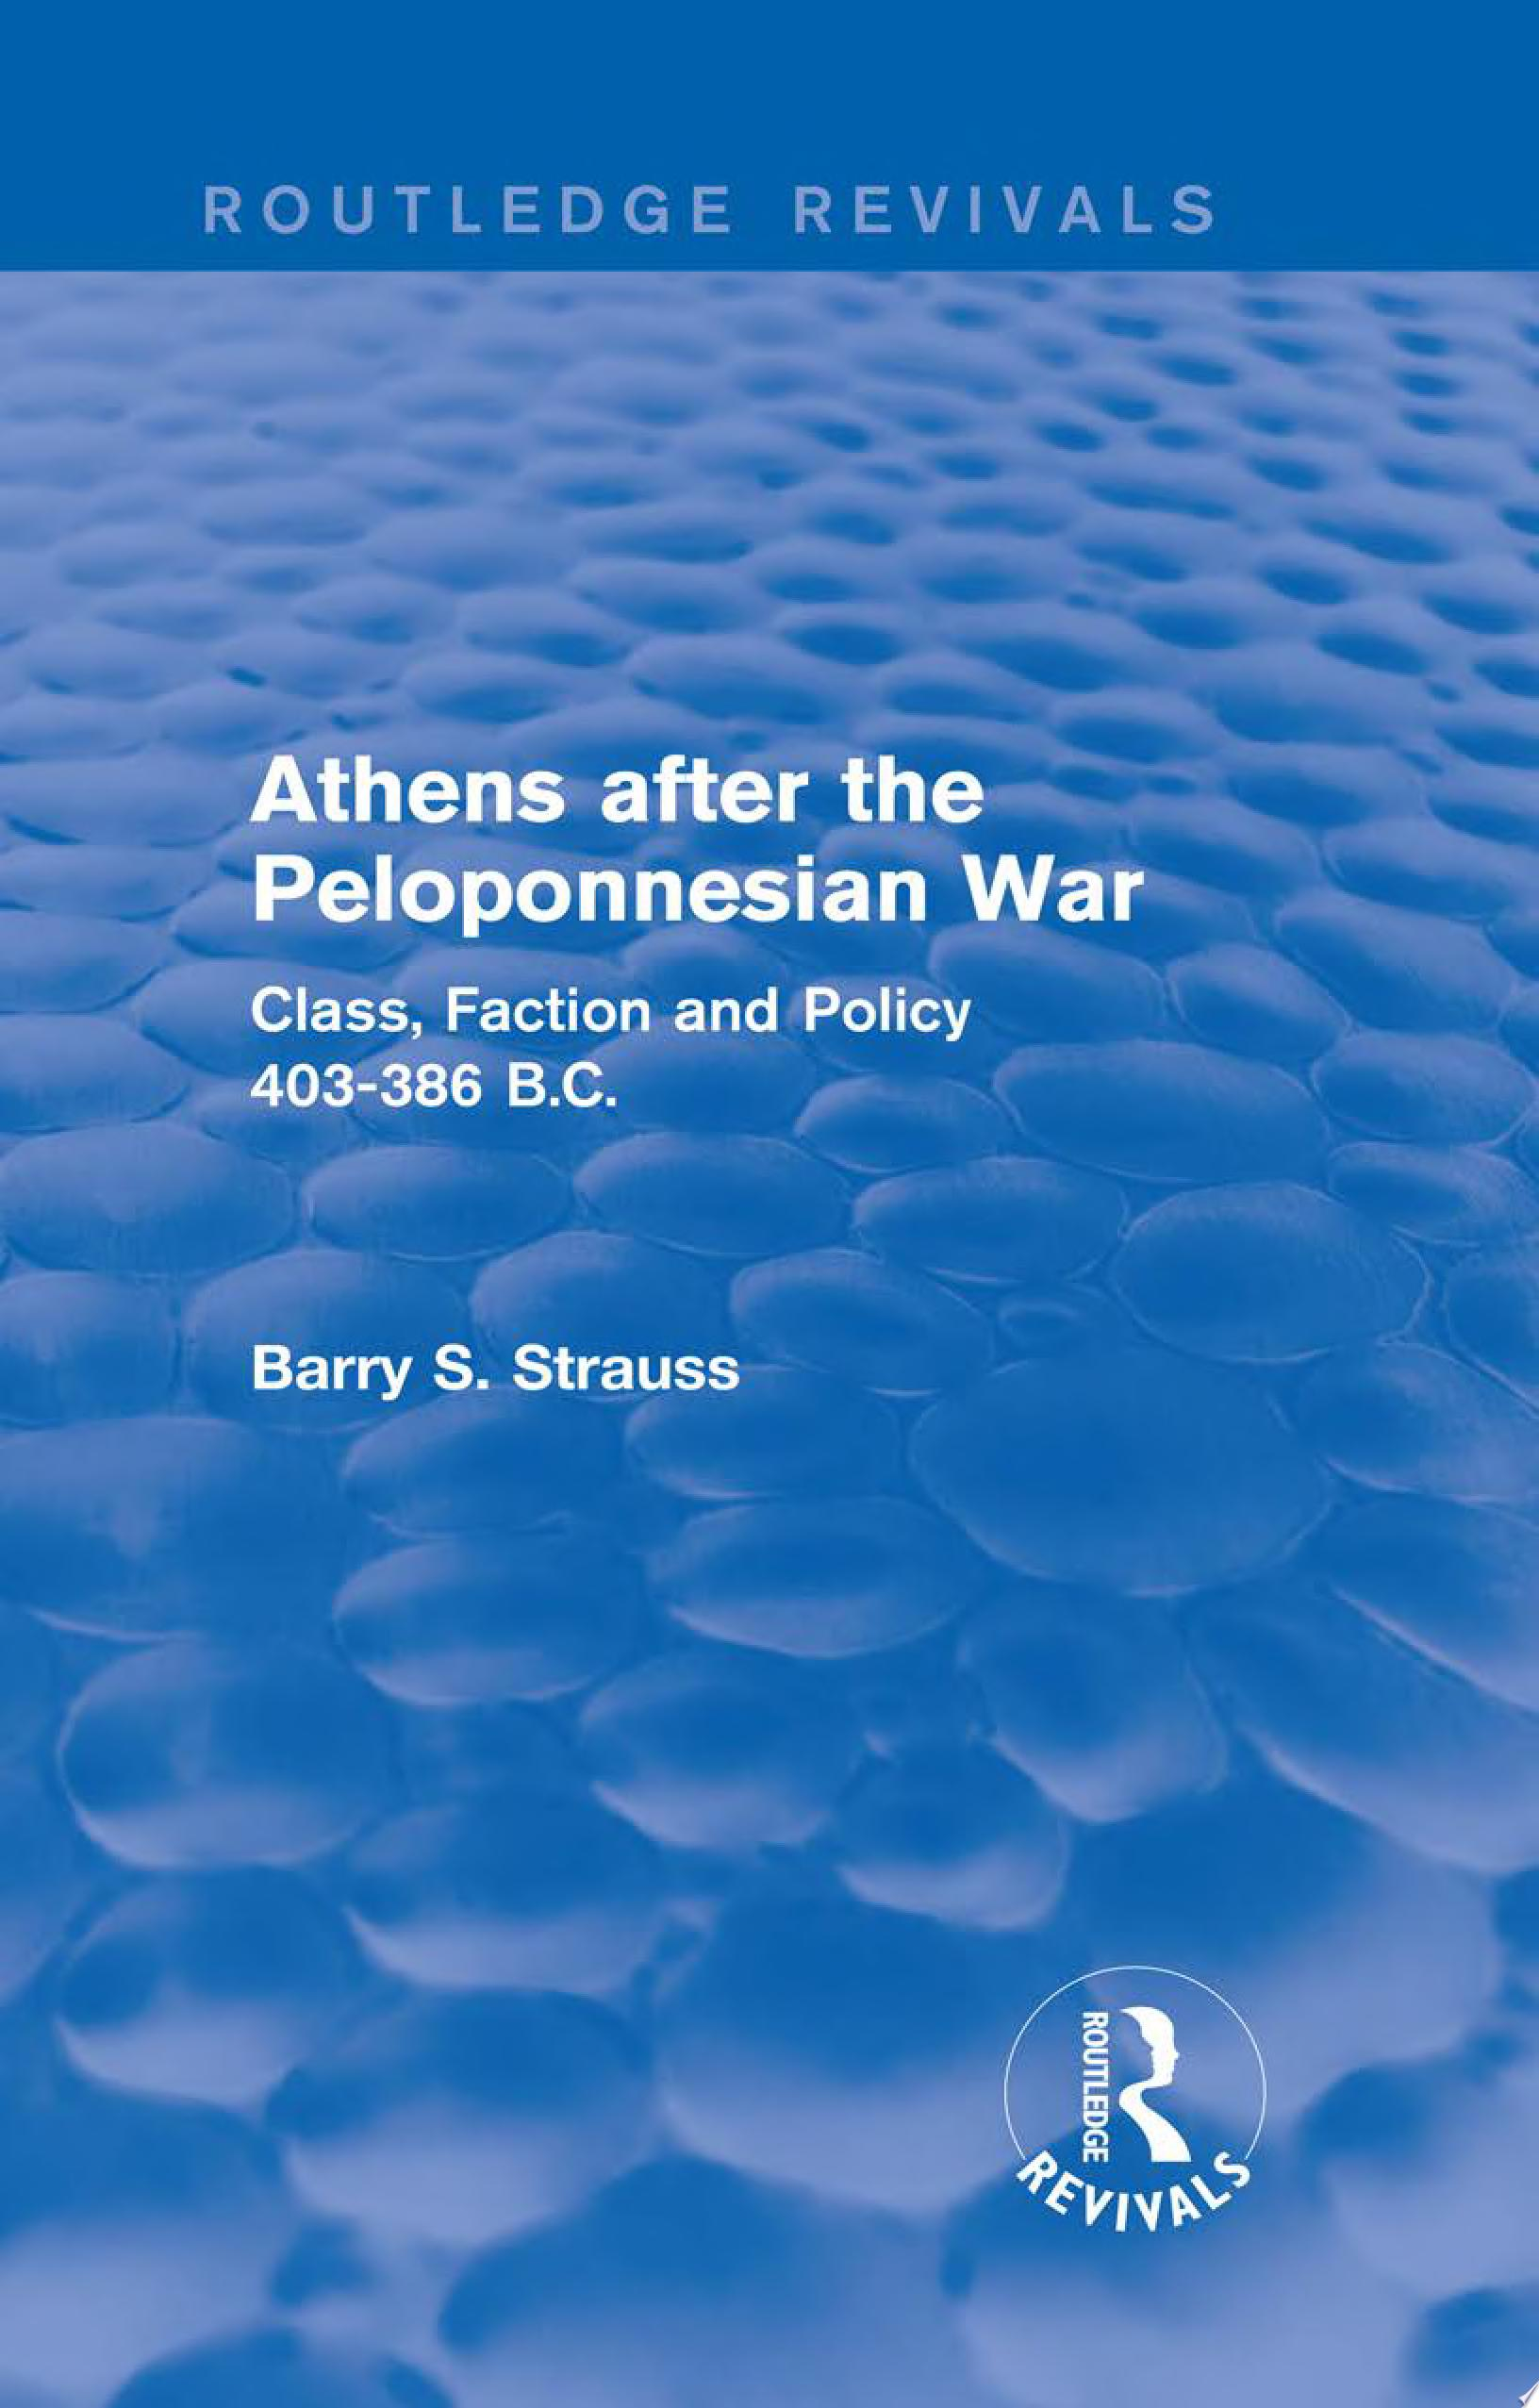 Athens after the Peloponnesian War  Routledge Revivals